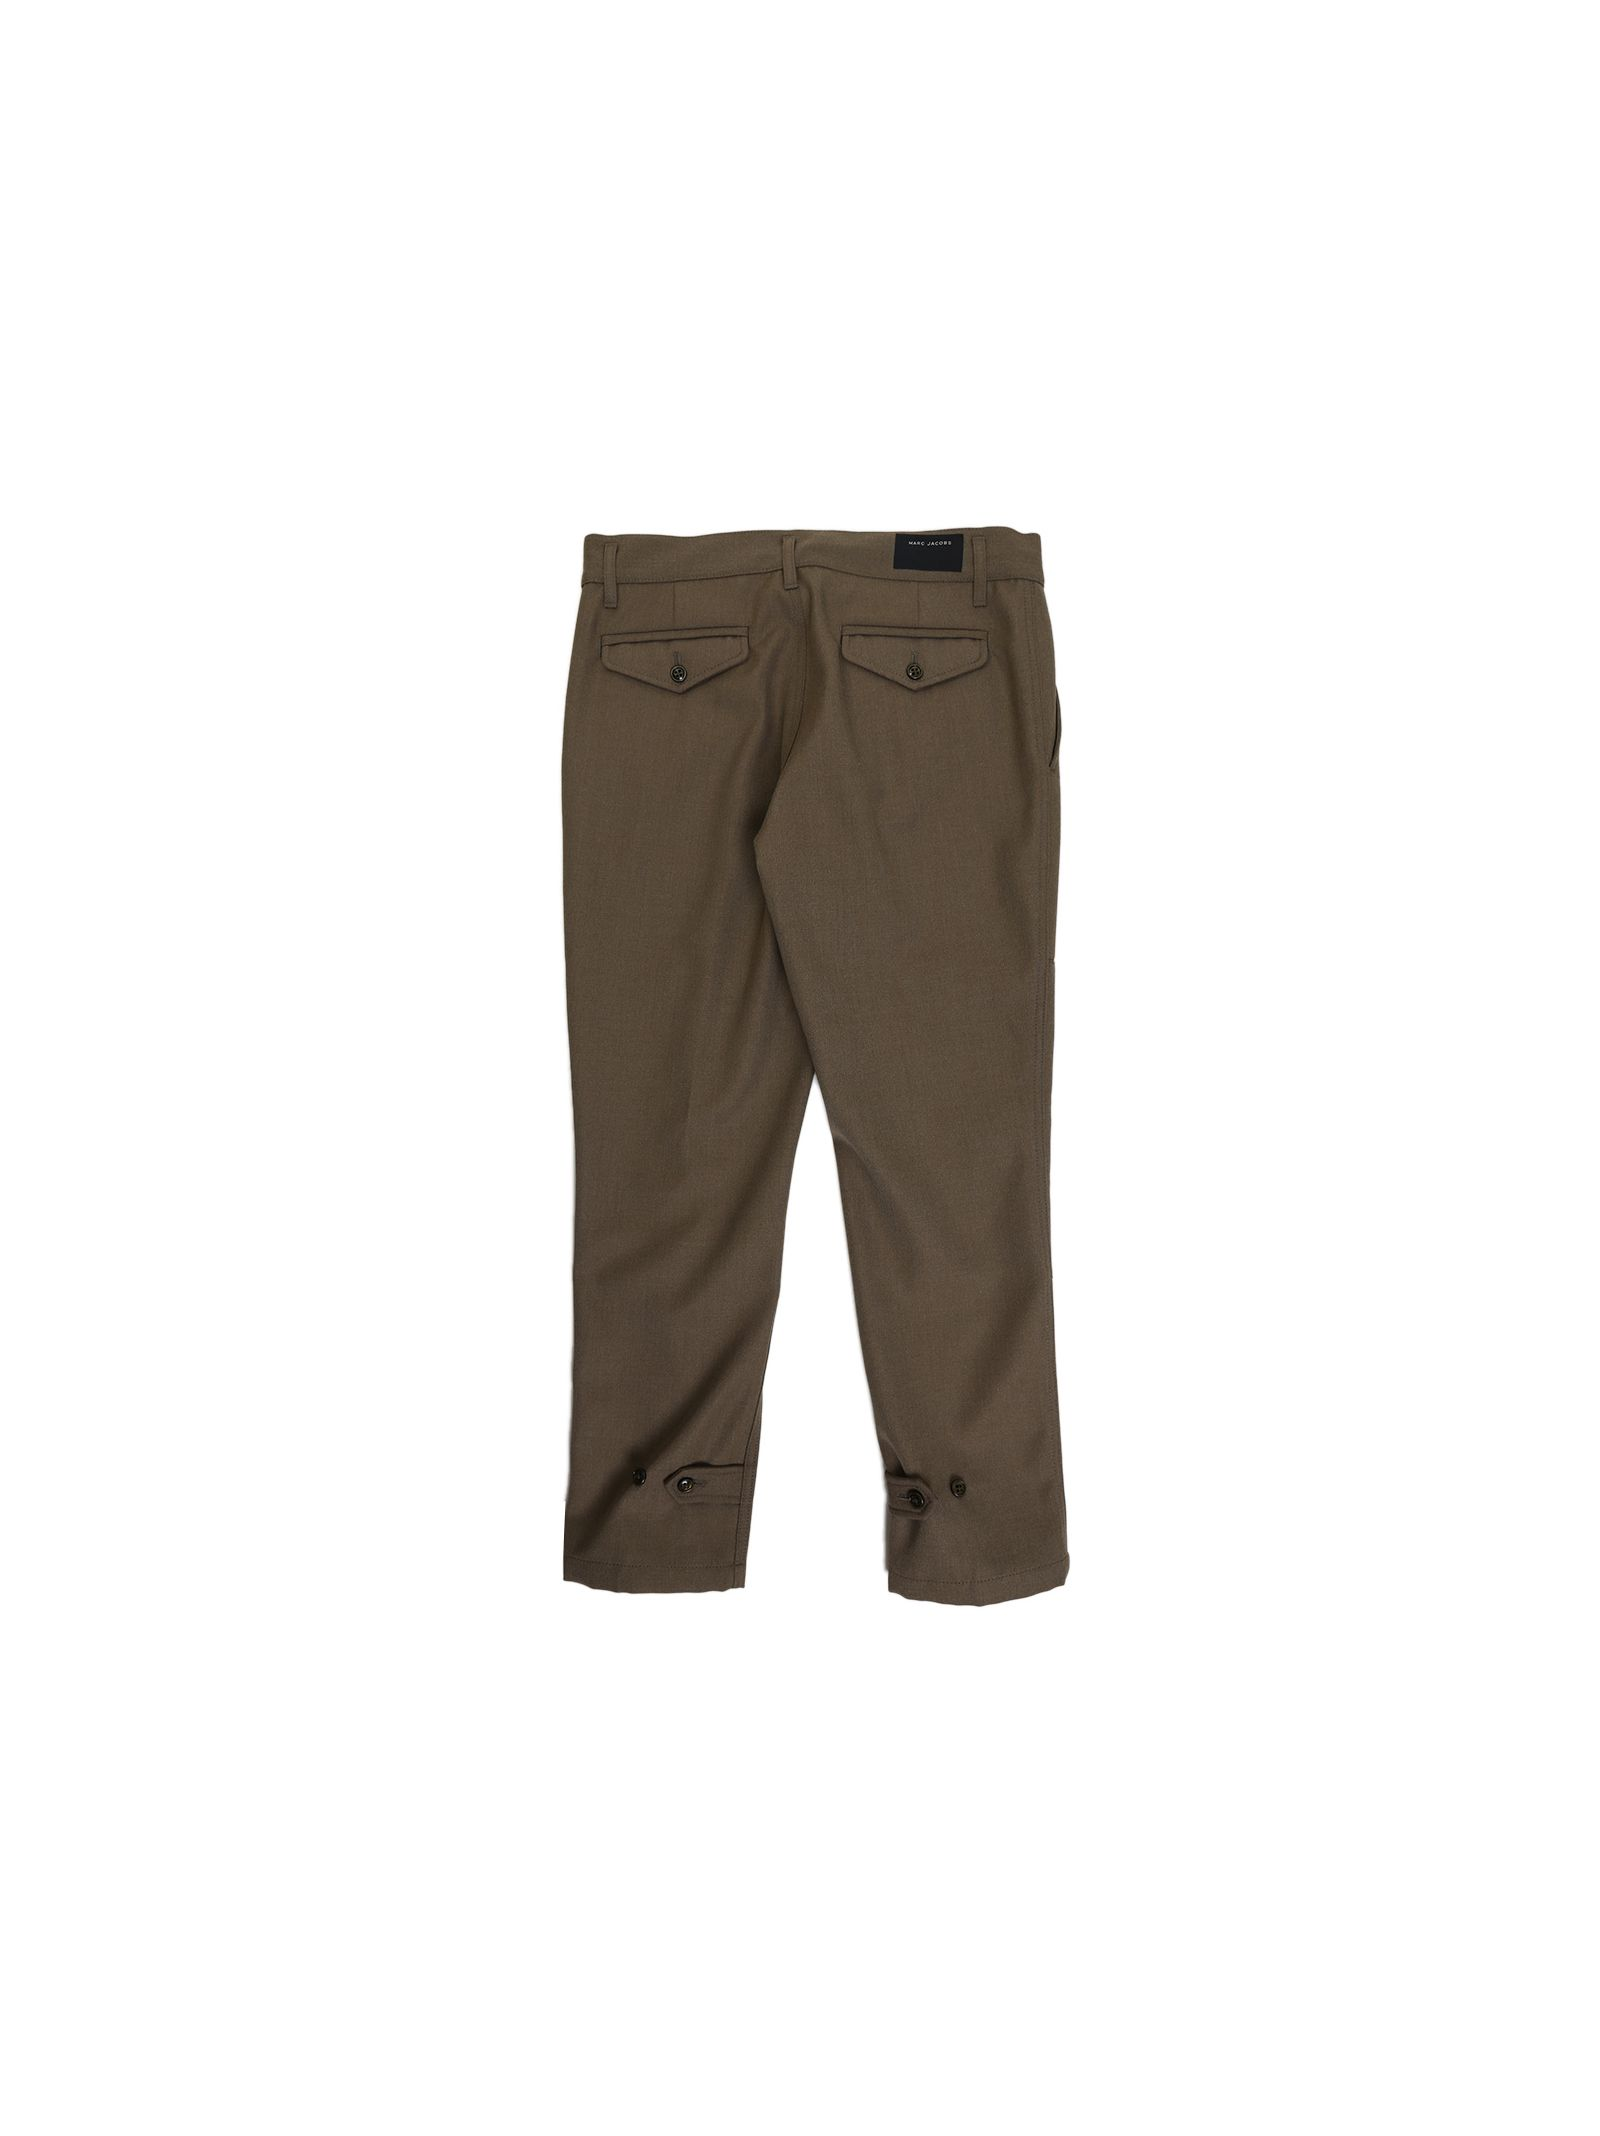 marc jacobs male 227429 military green cotton twill trousers